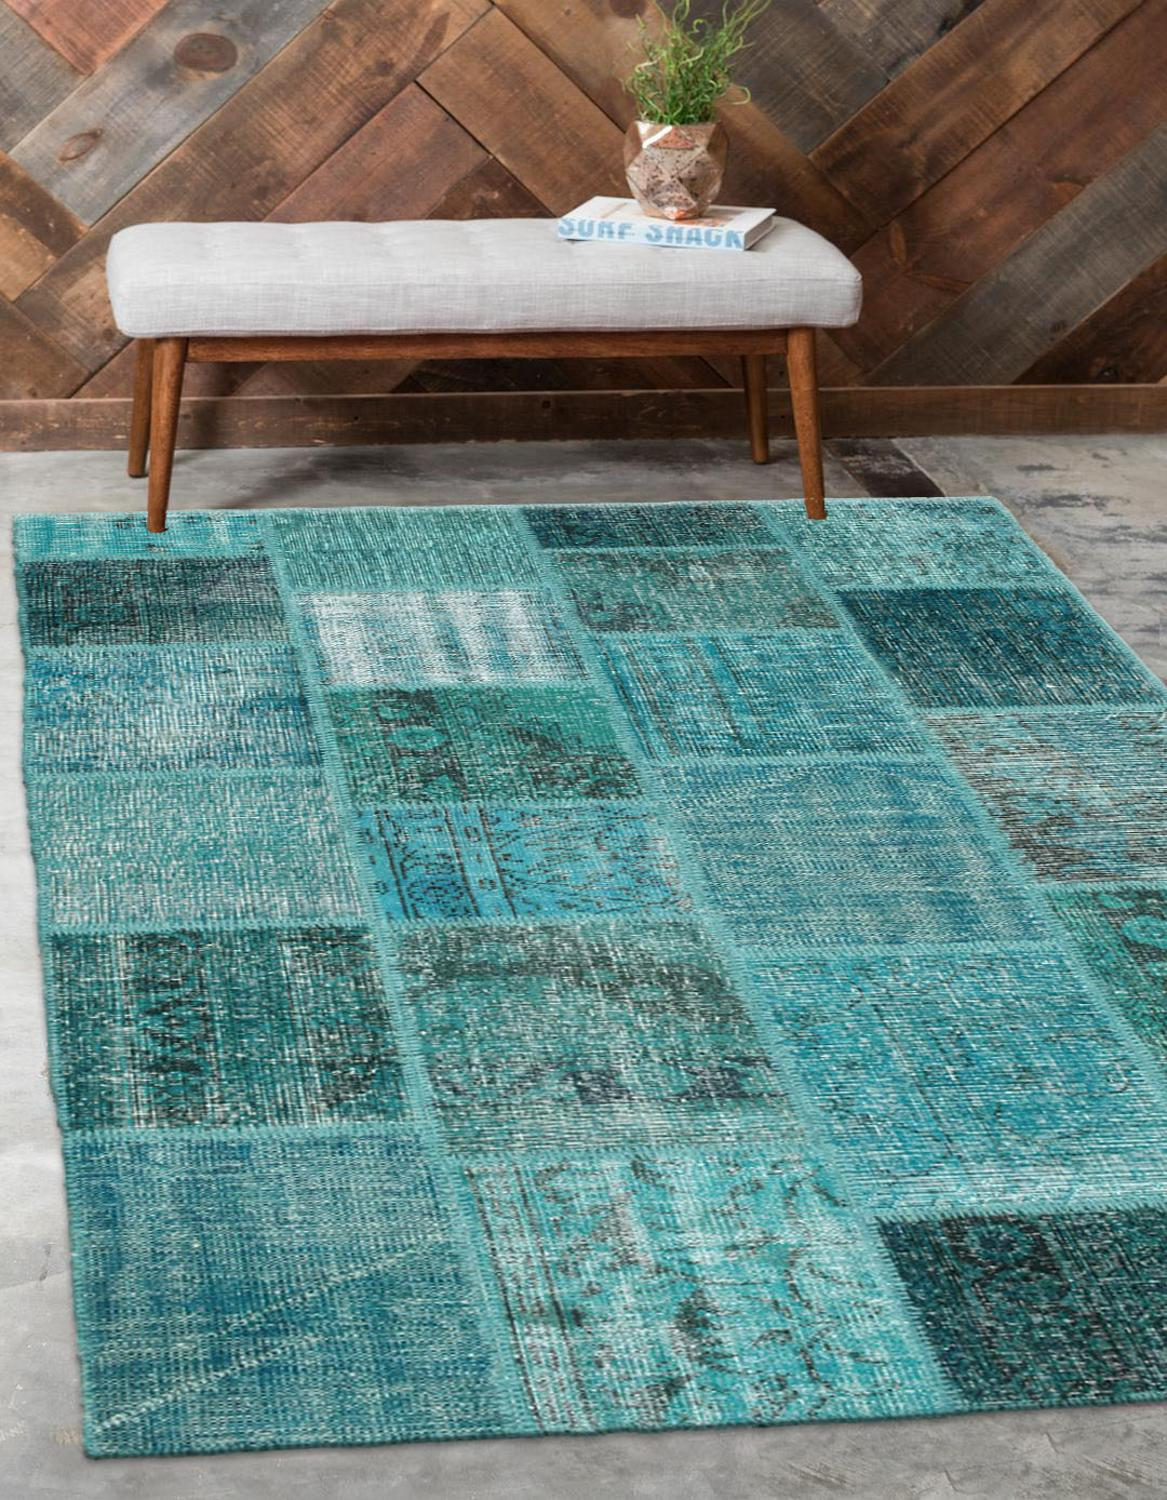 Else Turquoise Blue Anatolian Patchwork Rug Turkish Handmade Organic Area Rug Decorative Home Decor Wool Patchwork Rug Carpet